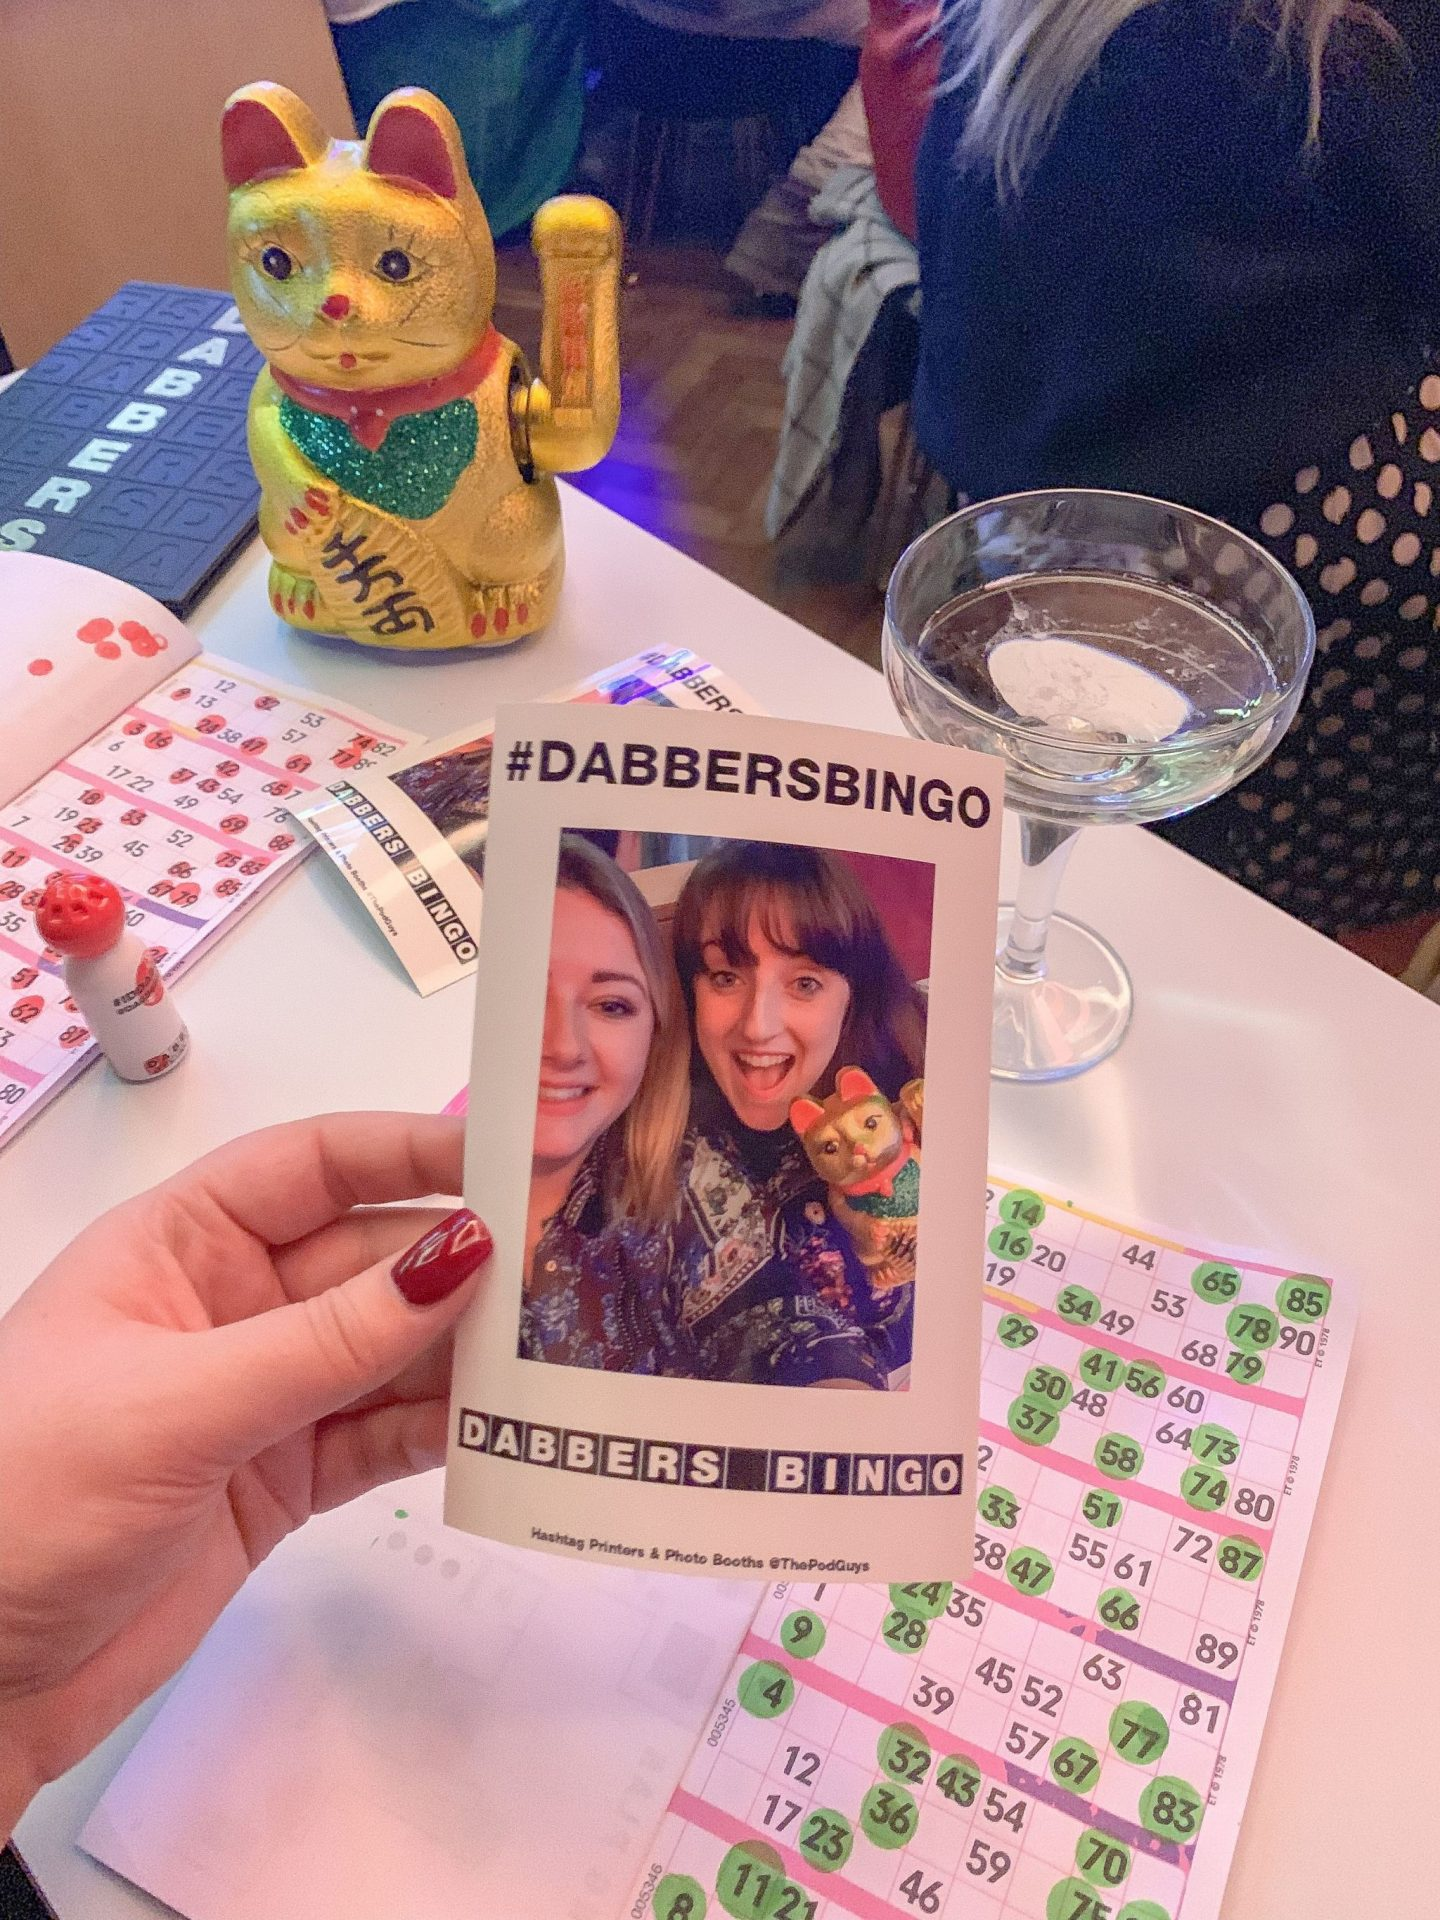 AD | An Evening at Dabbers Social Bingo